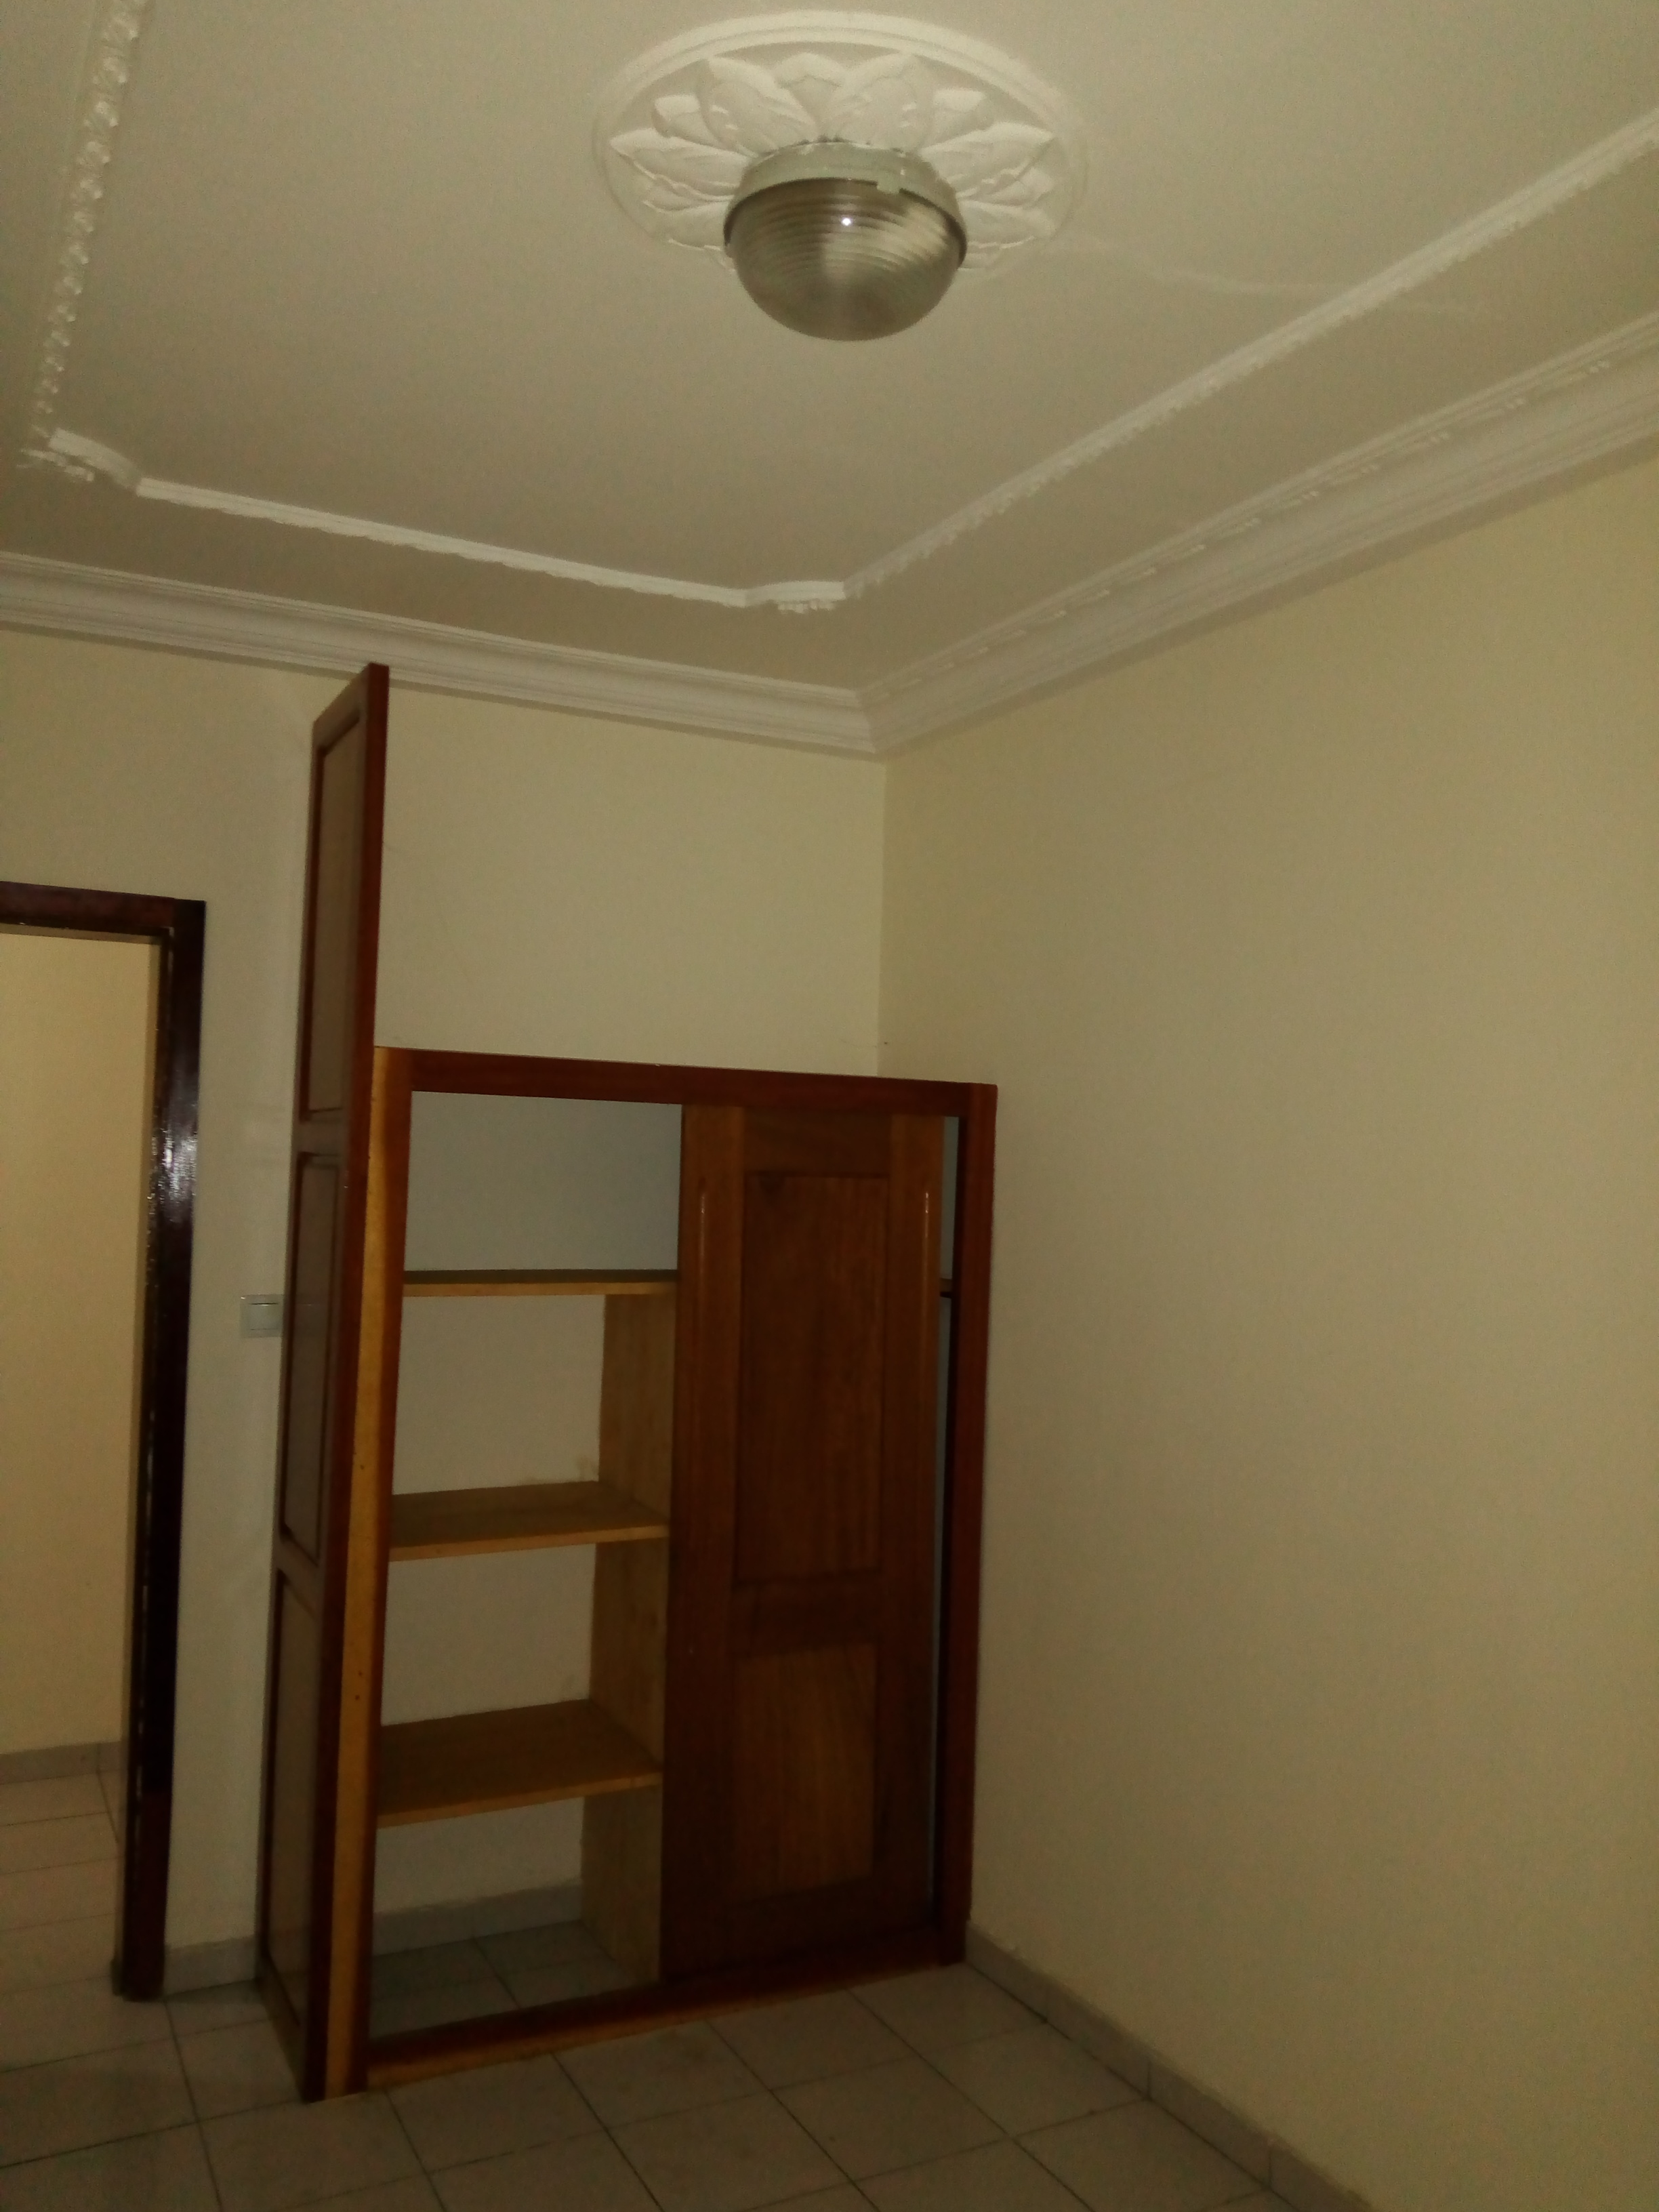 Apartment to rent - Douala, Makepe,  - 1 living room(s), 2 bedroom(s), 1 bathroom(s) - 140 000 FCFA / month